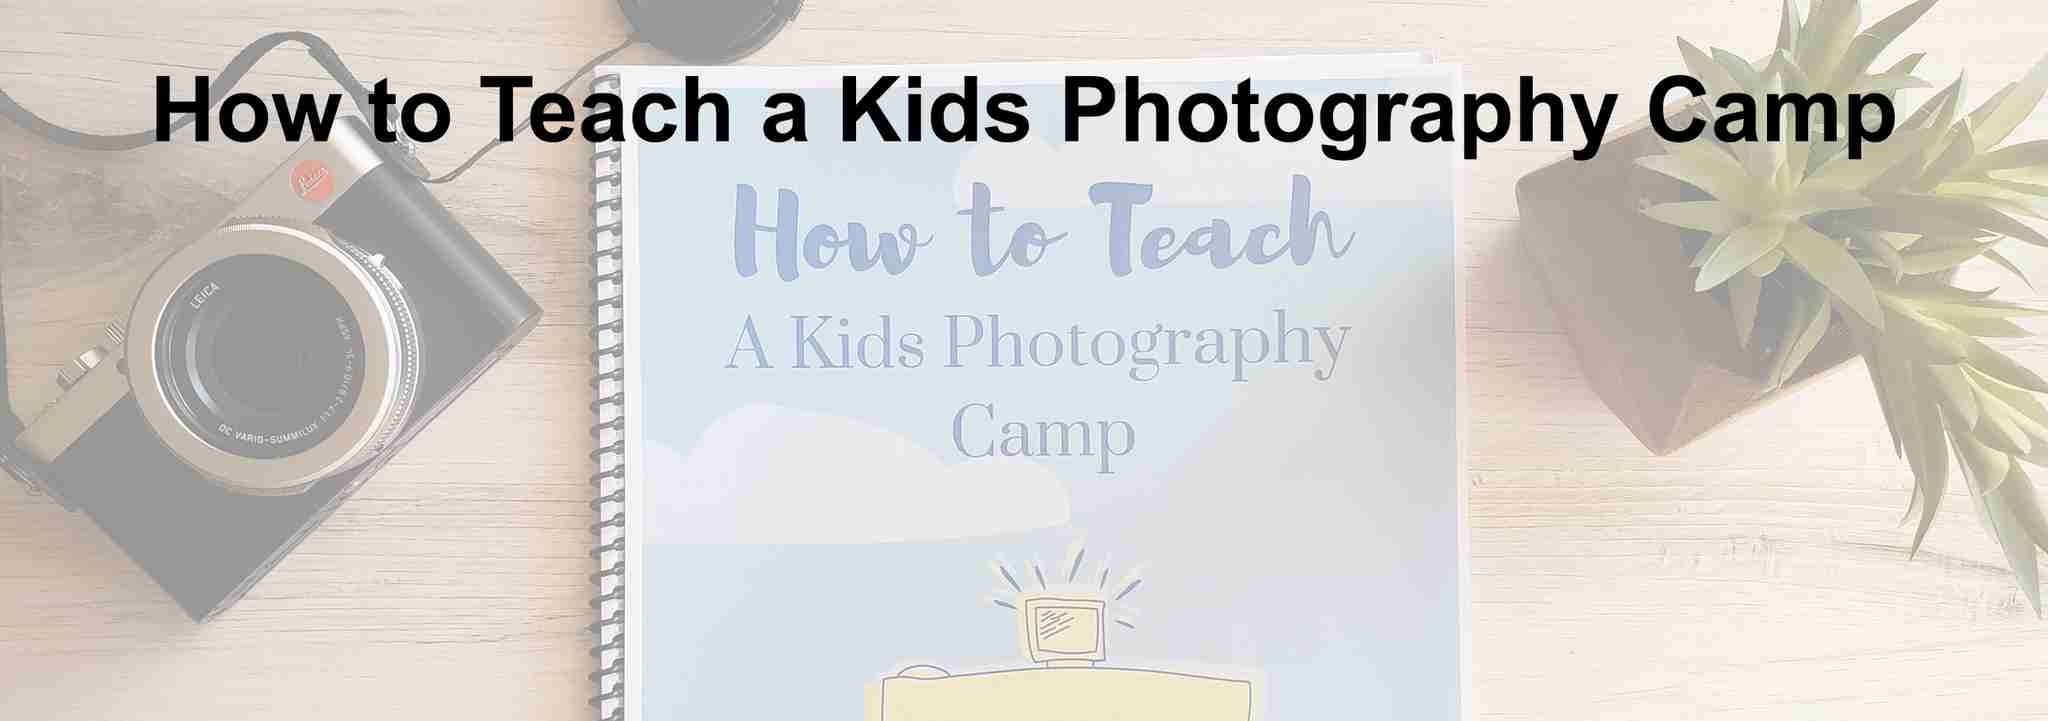 How to teach a kids photography camp